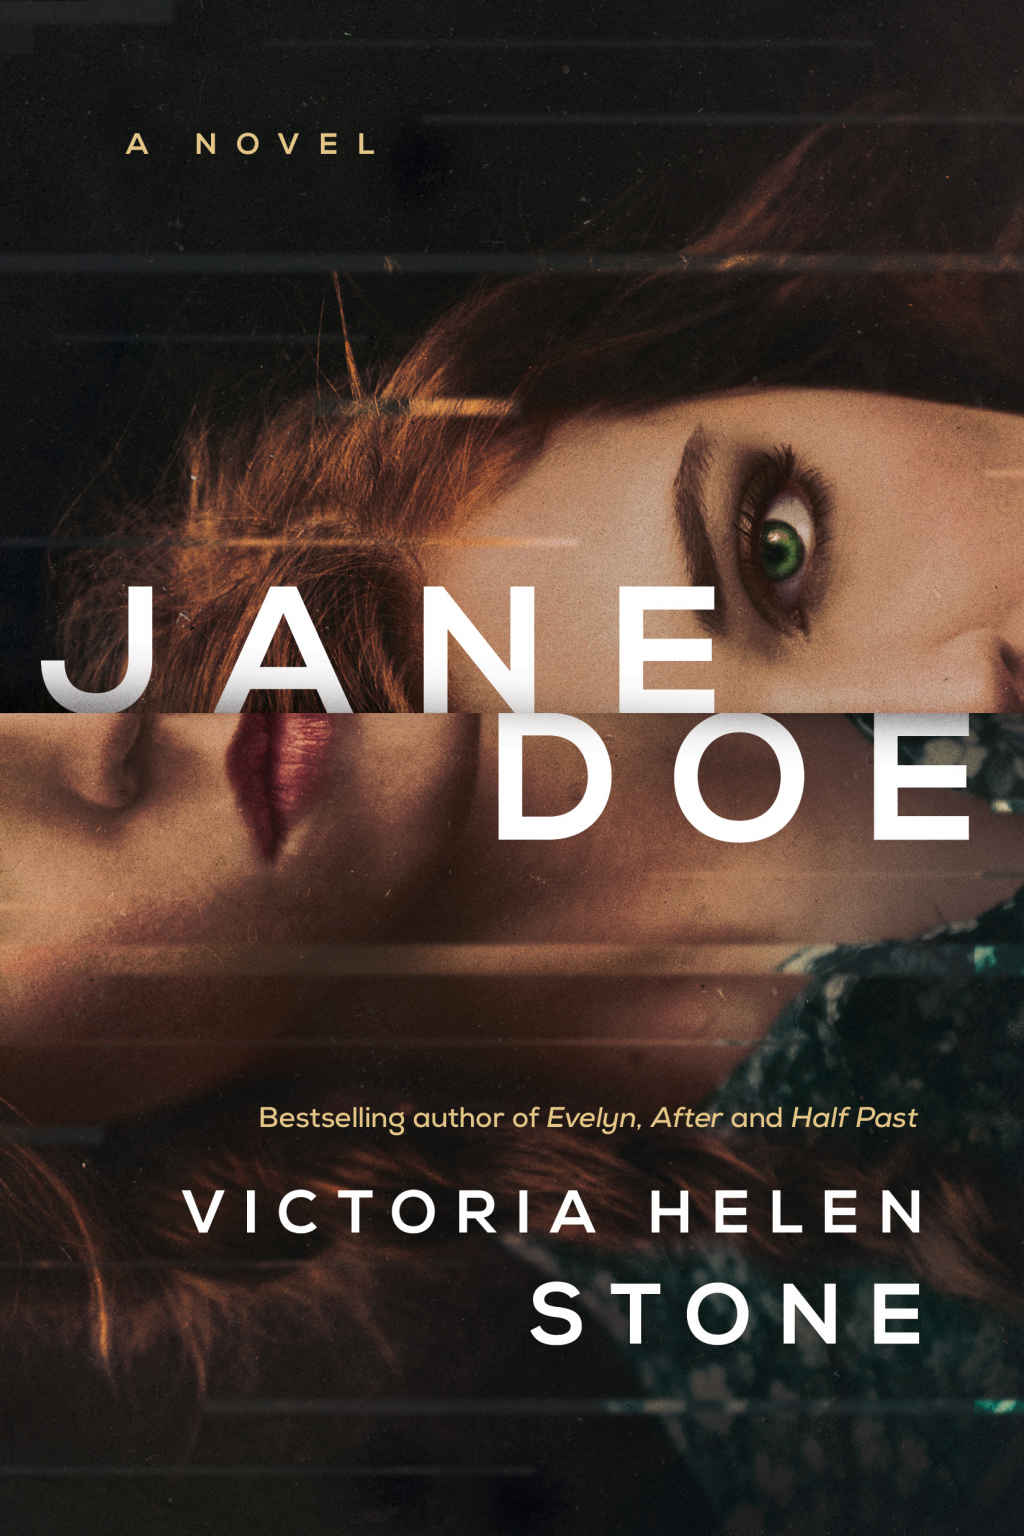 Jane Doe: A Novel - Victoria Helen Stone [kindle] [mobi]